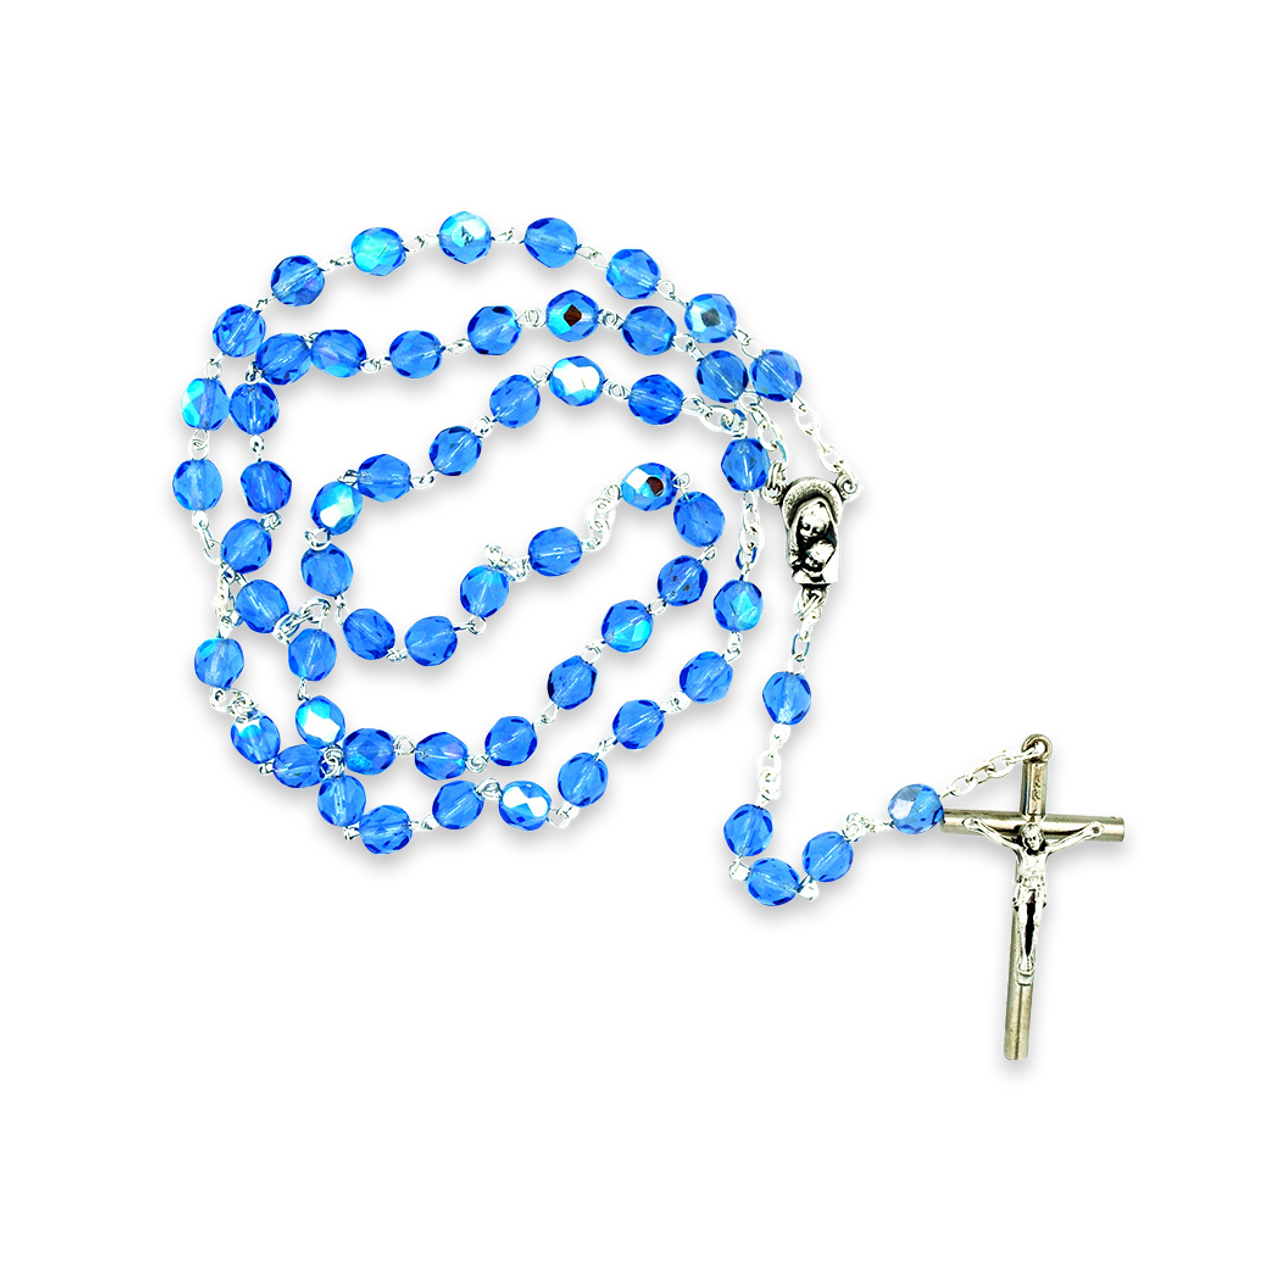 Blue Crystal Rosary Beads